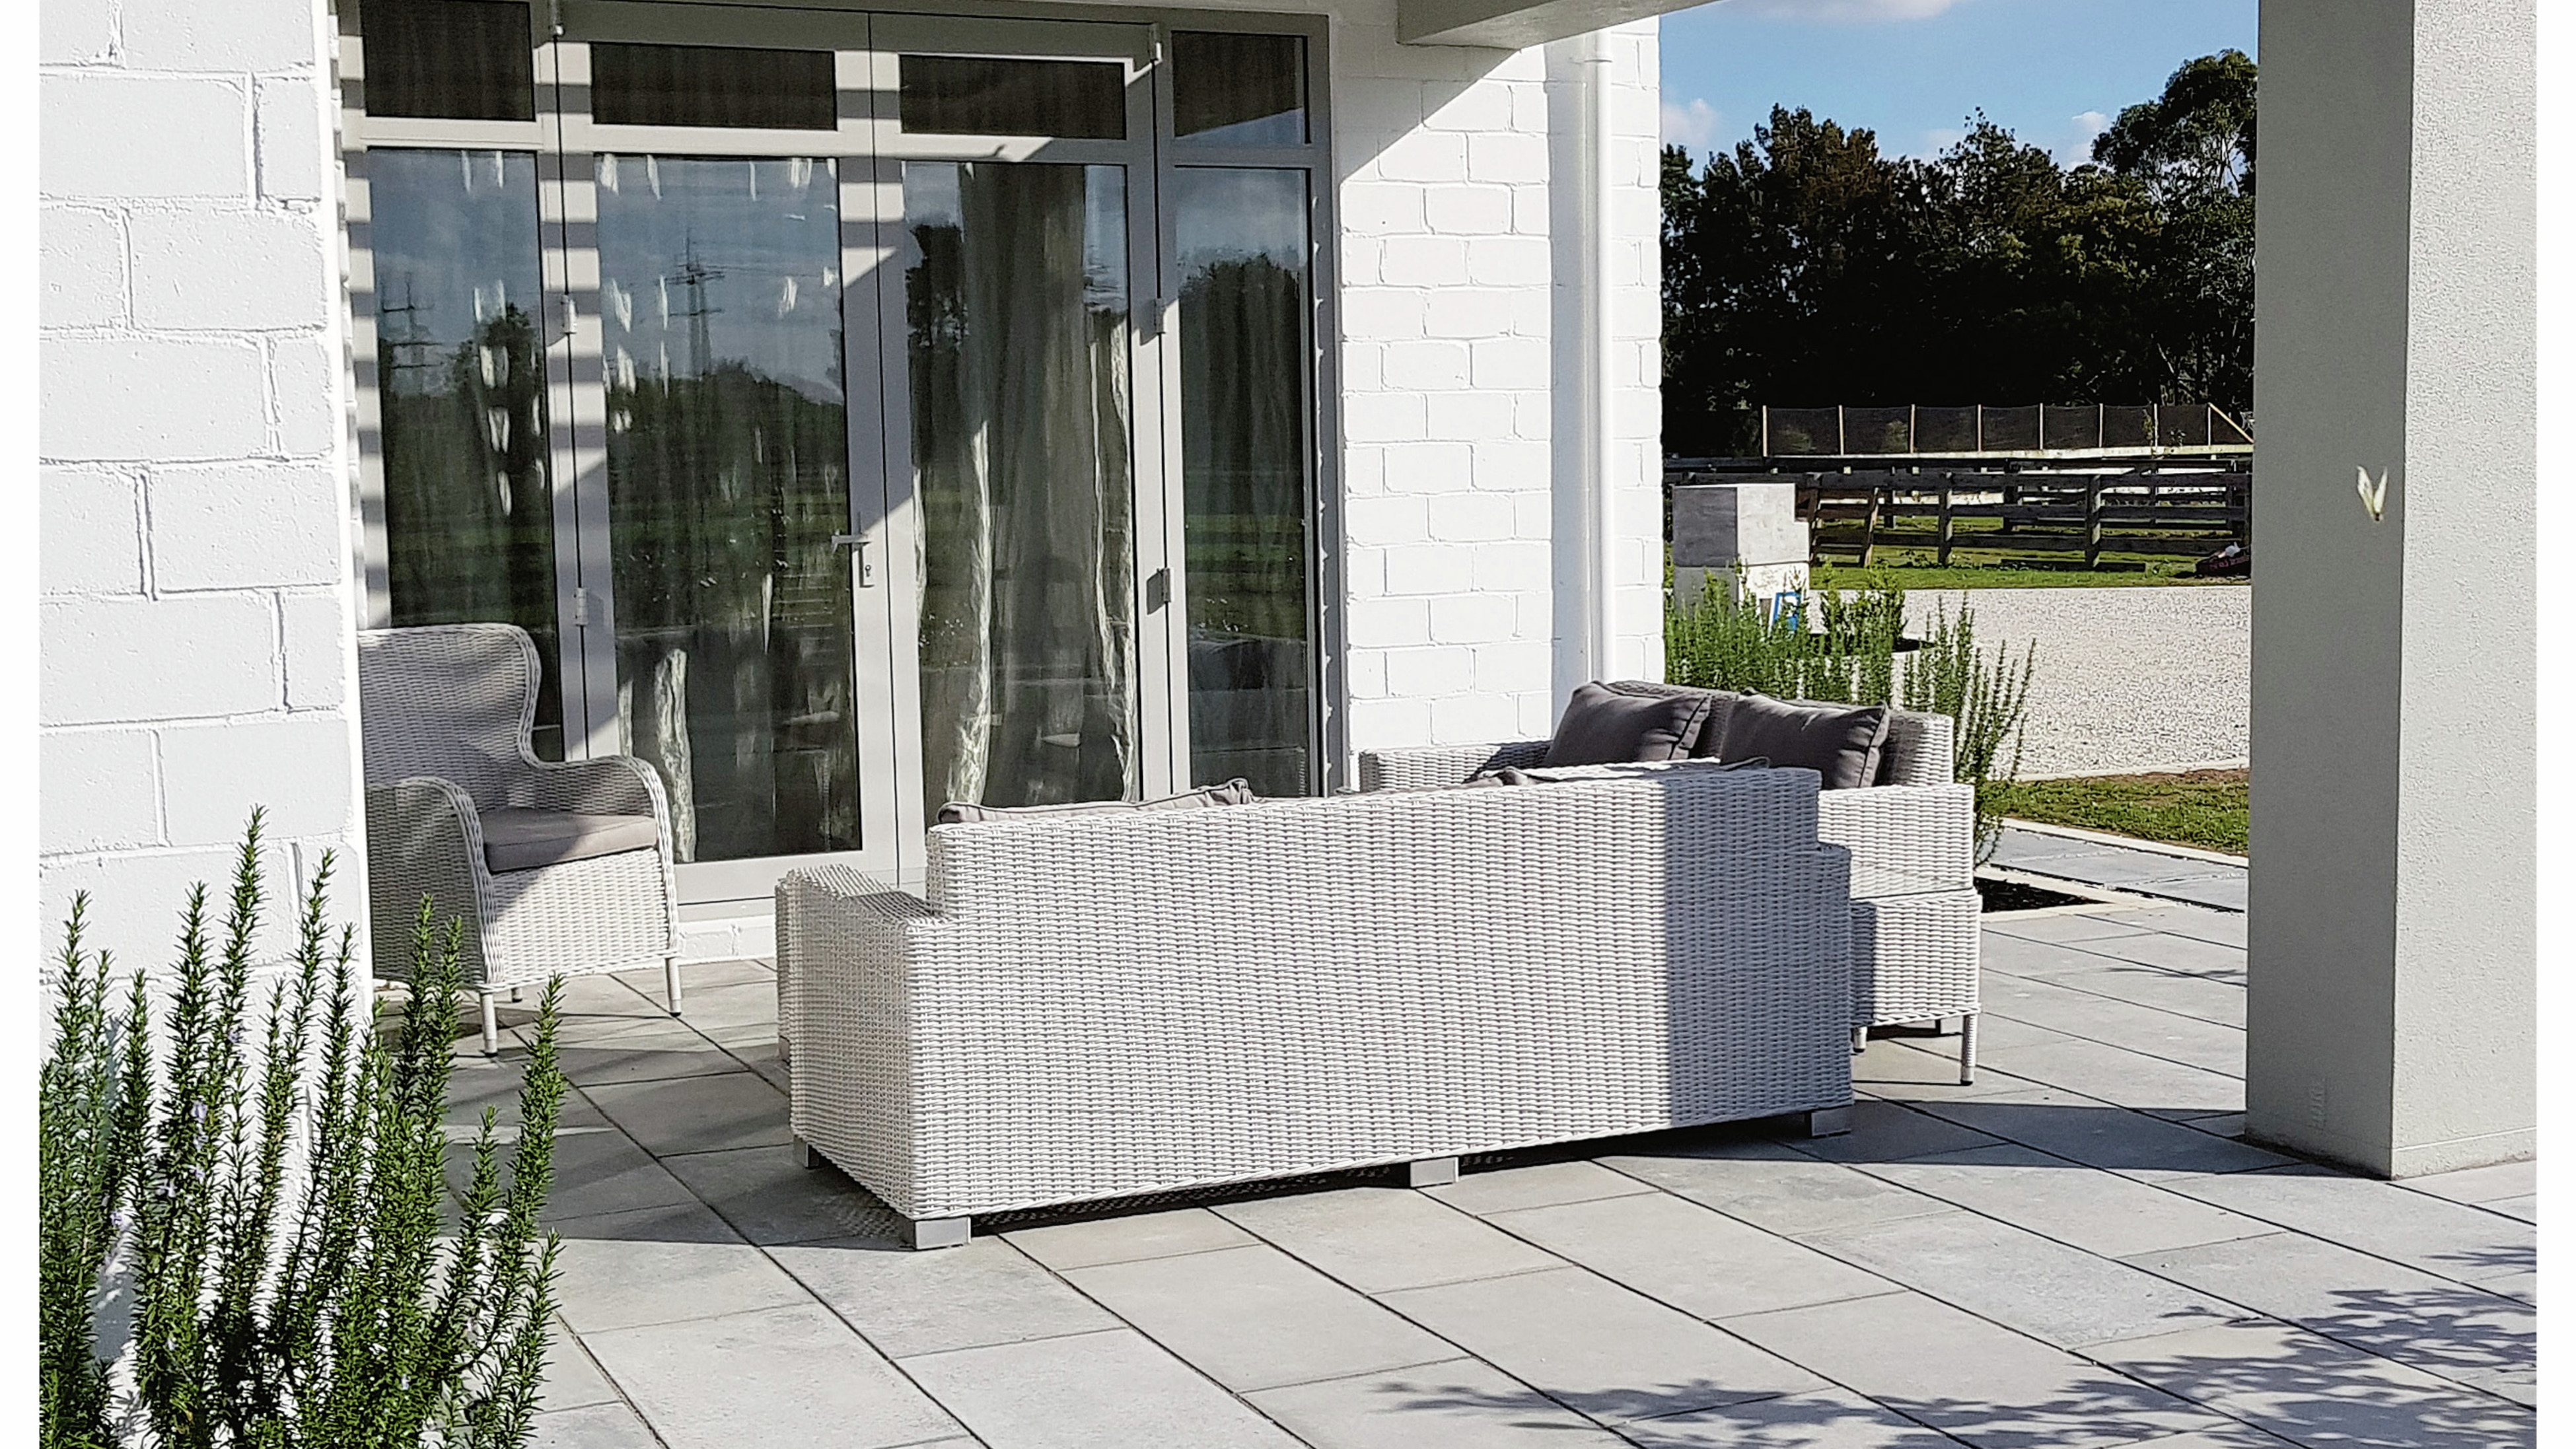 Paved outdoor area with outdoor furniture.